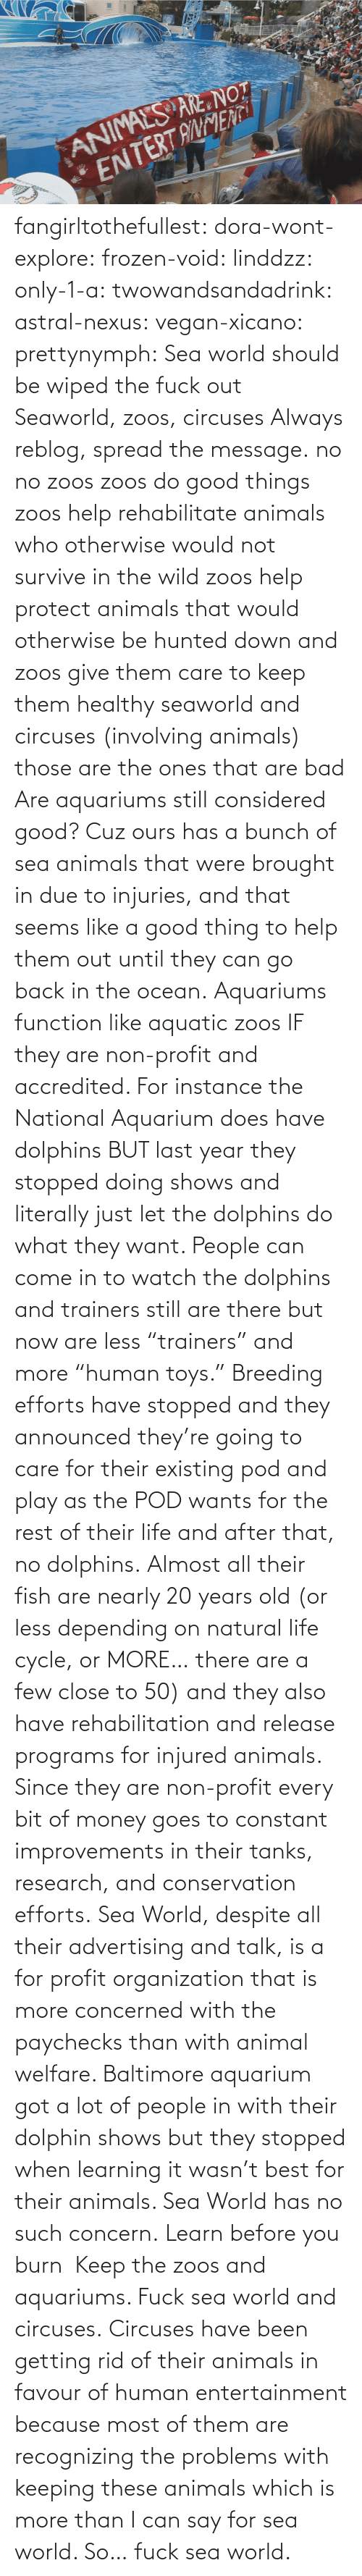 "problems: fangirltothefullest:  dora-wont-explore:  frozen-void:  linddzz:  only-1-a:  twowandsandadrink:  astral-nexus:  vegan-xicano:  prettynymph:  Sea world should be wiped the fuck out  Seaworld, zoos, circuses  Always reblog, spread the message.  no no zoos zoos do good things zoos help rehabilitate animals who otherwise would not survive in the wild zoos help protect animals that would otherwise be hunted down and zoos give them care to keep them healthy seaworld and circuses (involving animals) those are the ones that are bad  Are aquariums still considered good? Cuz ours has a bunch of sea animals that were brought in due to injuries, and that seems like a good thing to help them out until they can go back in the ocean.  Aquariums function like aquatic zoos IF they are non-profit and accredited. For instance the National Aquarium does have dolphins BUT last year they stopped doing shows and literally just let the dolphins do what they want. People can come in to watch the dolphins and trainers still are there but now are less ""trainers"" and more ""human toys."" Breeding efforts have stopped and they announced they're going to care for their existing pod and play as the POD wants for the rest of their life and after that, no dolphins. Almost all their fish are nearly 20 years old (or less depending on natural life cycle, or MORE… there are a few close to 50) and they also have rehabilitation and release programs for injured animals. Since they are non-profit every bit of money goes to constant improvements in their tanks, research, and conservation efforts. Sea World, despite all their advertising and talk, is a for profit organization that is more concerned with the paychecks than with animal welfare. Baltimore aquarium got a lot of people in with their dolphin shows but they stopped when learning it wasn't best for their animals. Sea World has no such concern.  Learn before you burn   Keep the zoos and aquariums. Fuck sea world and circuses.  Circuses have been getting rid of  their animals in favour of human entertainment because most of them are recognizing the problems with keeping these animals which is more than I can say for sea world. So… fuck sea world."